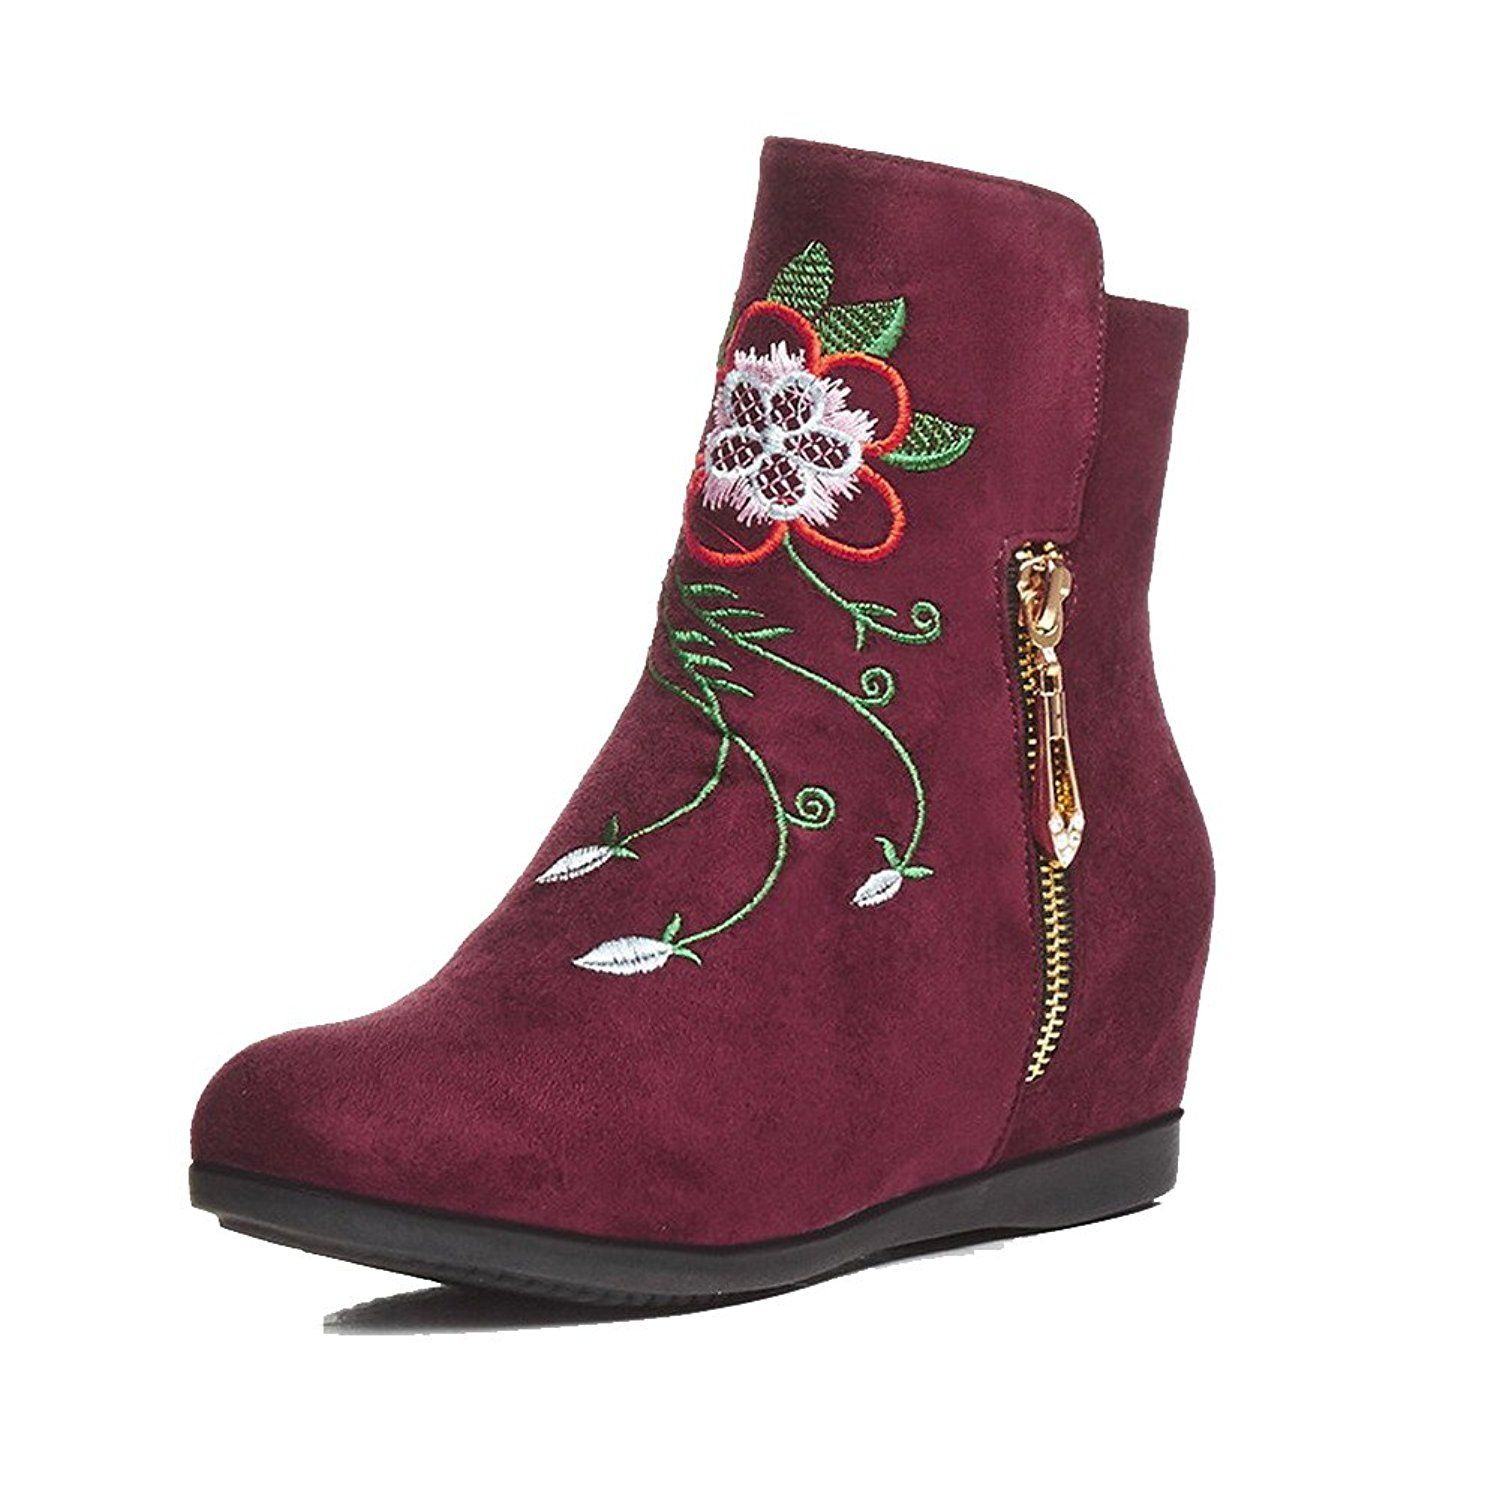 Women's Assorted Color Imitated Suede Kitten-Heels Zipper Round Closed Toe Boots